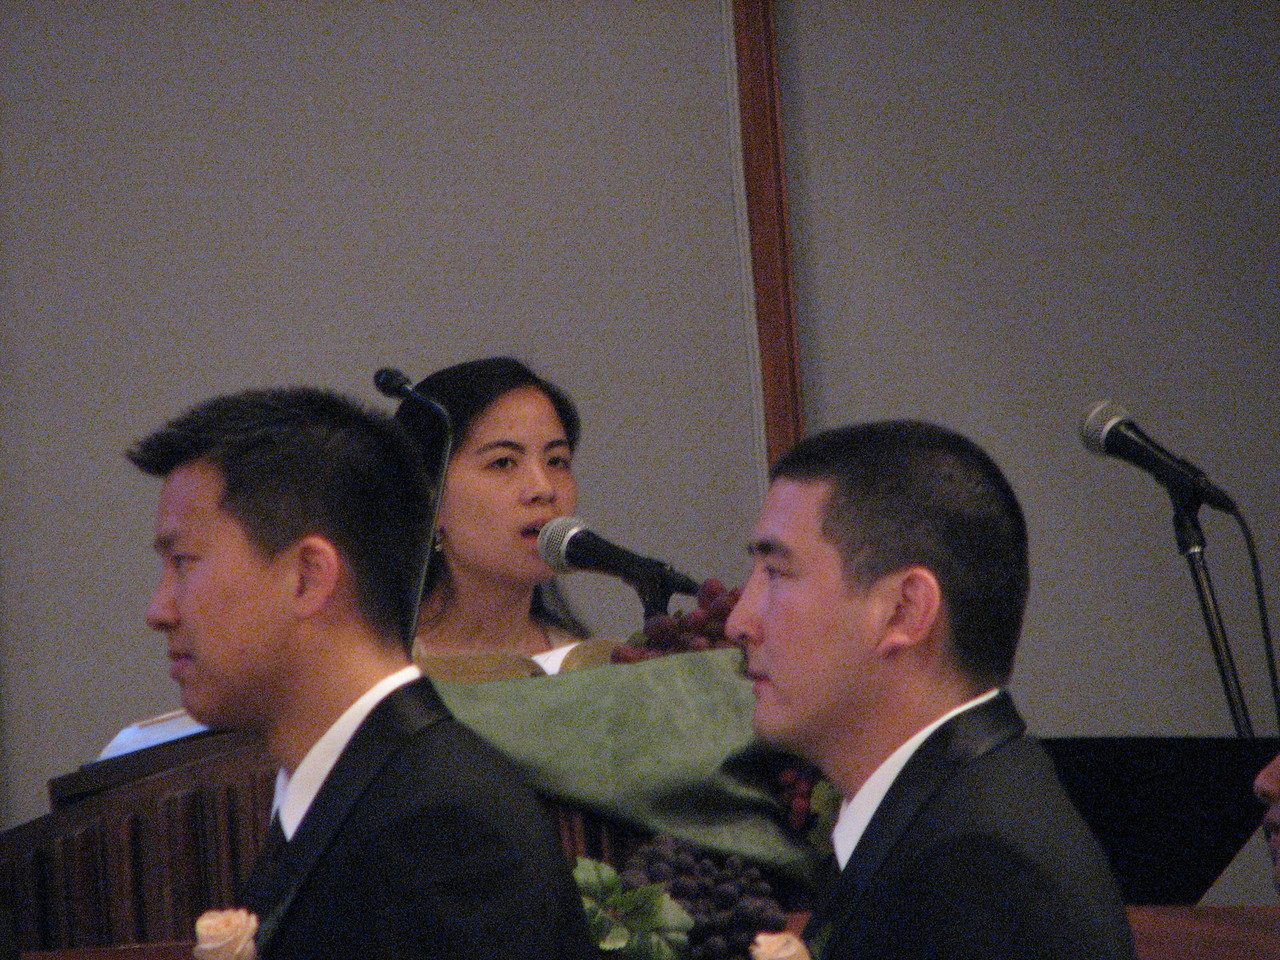 2007 06 09 Sat - Wedding singer - Audrey Wu